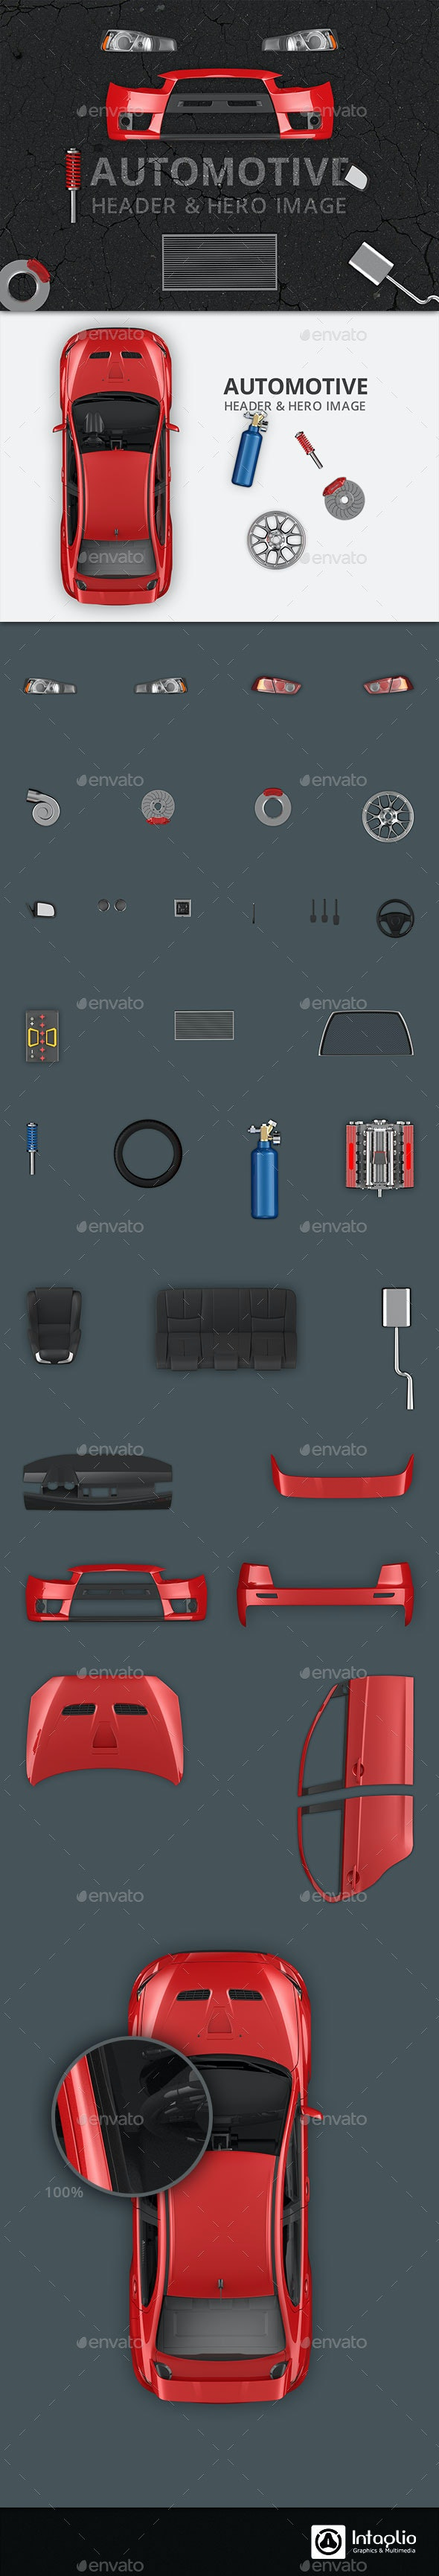 23 Best Hero Image, Scene Maker & Mockup Generator - GraphicRiver for February 2019